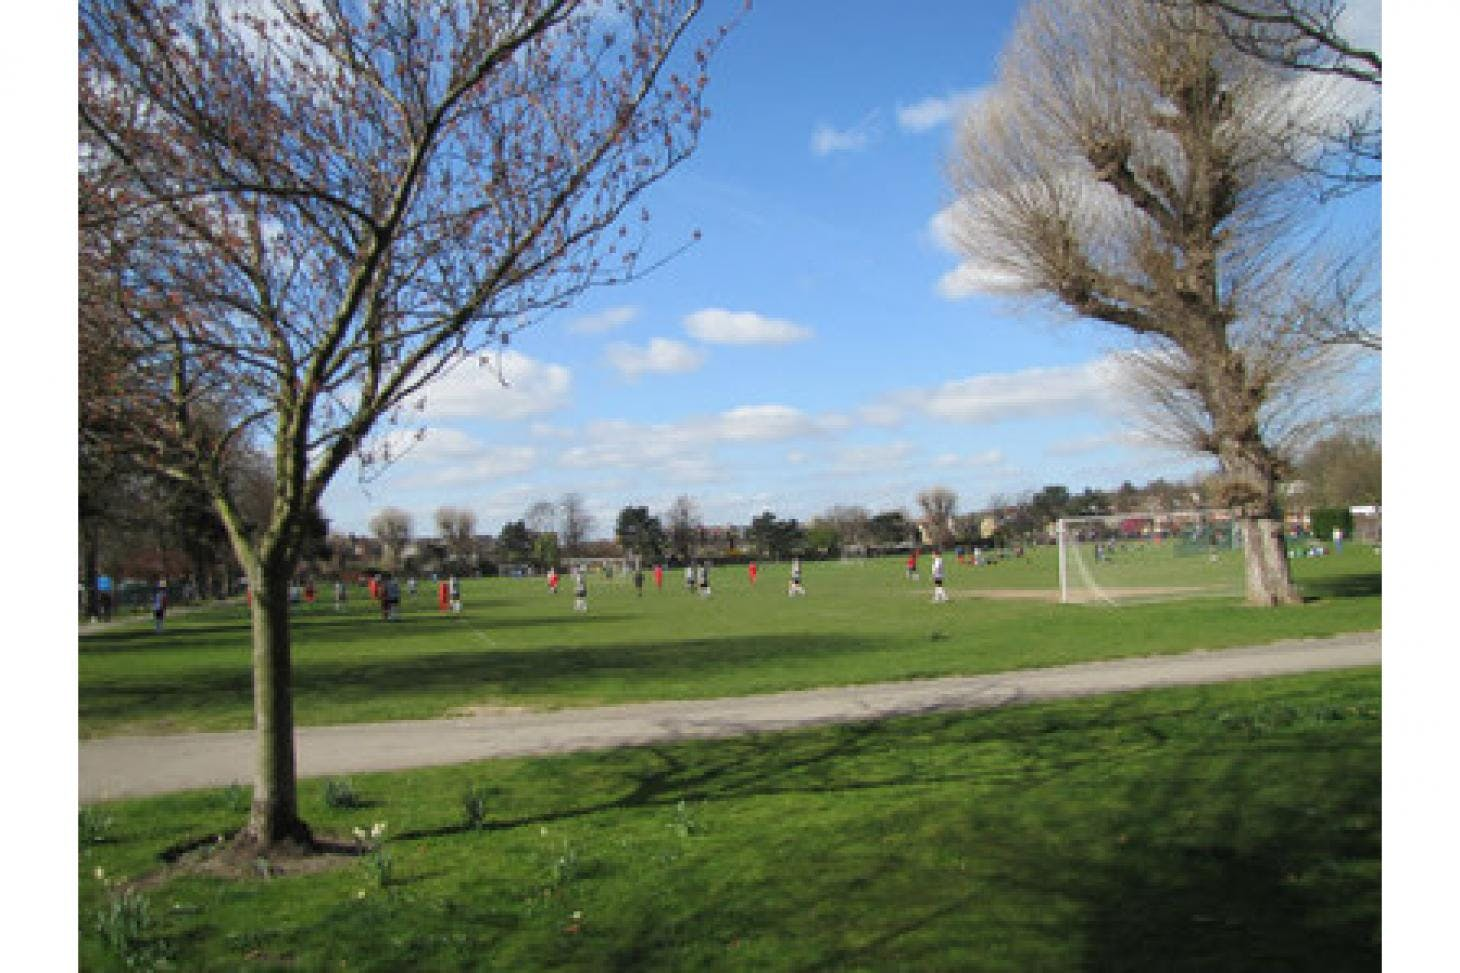 Dundonald Recreation Ground 11 a side | Grass football pitch